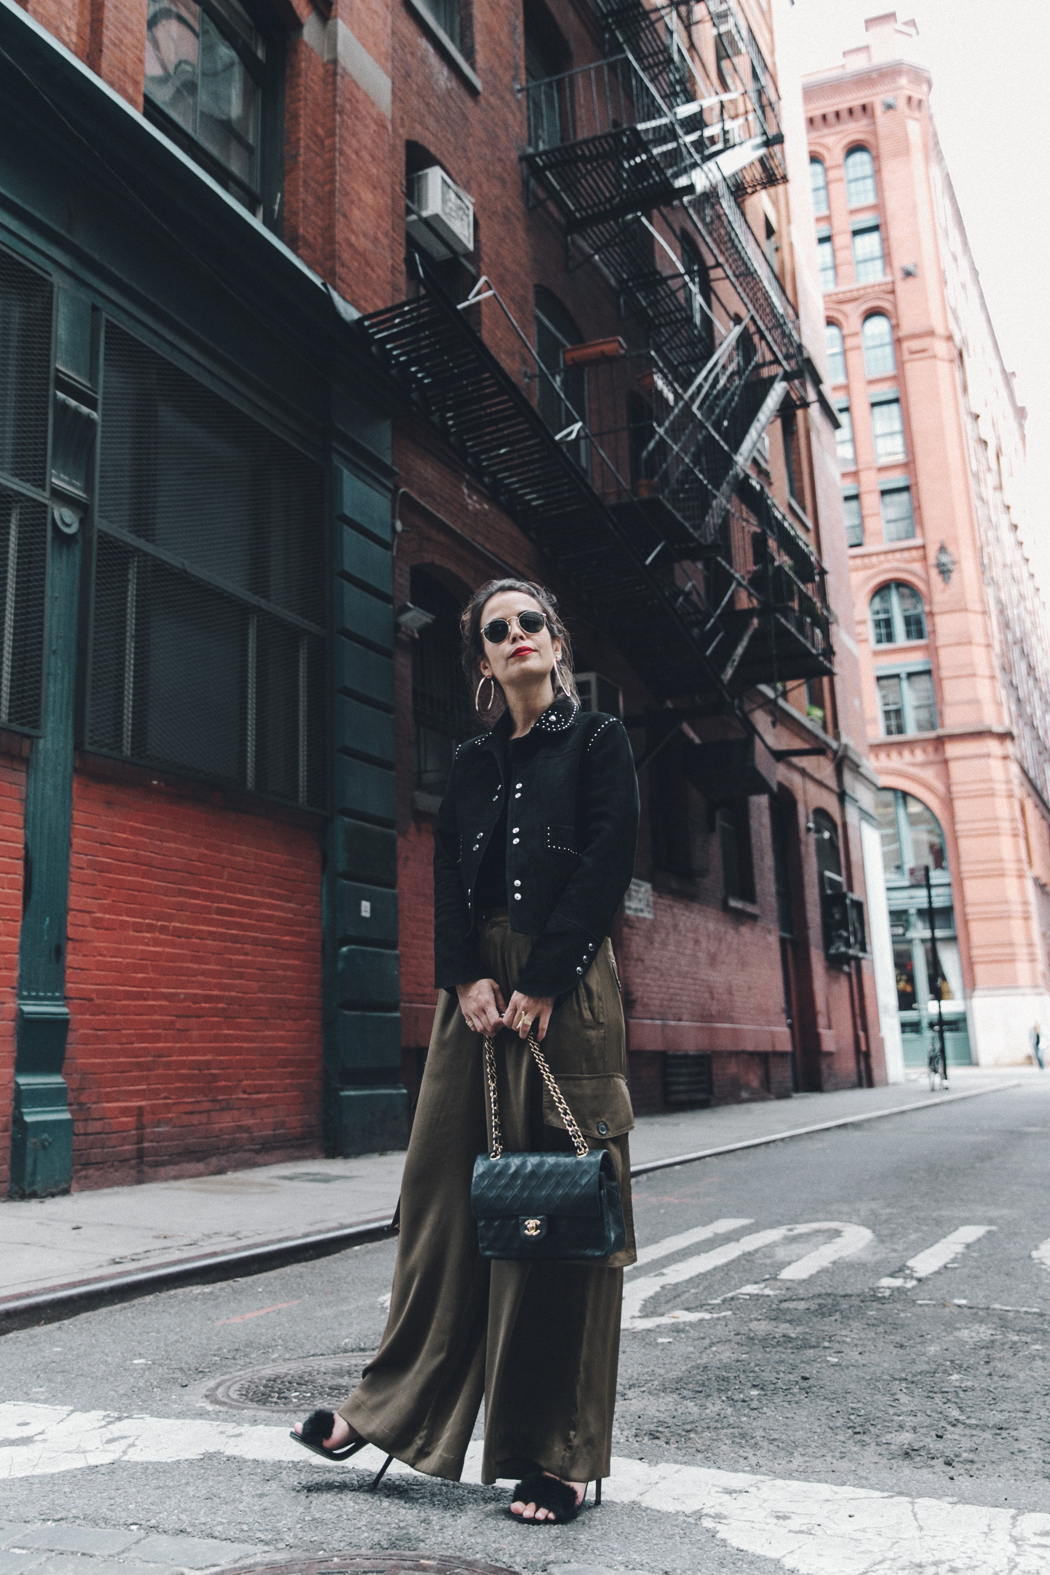 Khaki_Trousers-Sandro_Suede_Jacket-BNKR_Sandals-Fur_Sandals-Chanel_Bag-Outfit-Street_Style-NYC-37